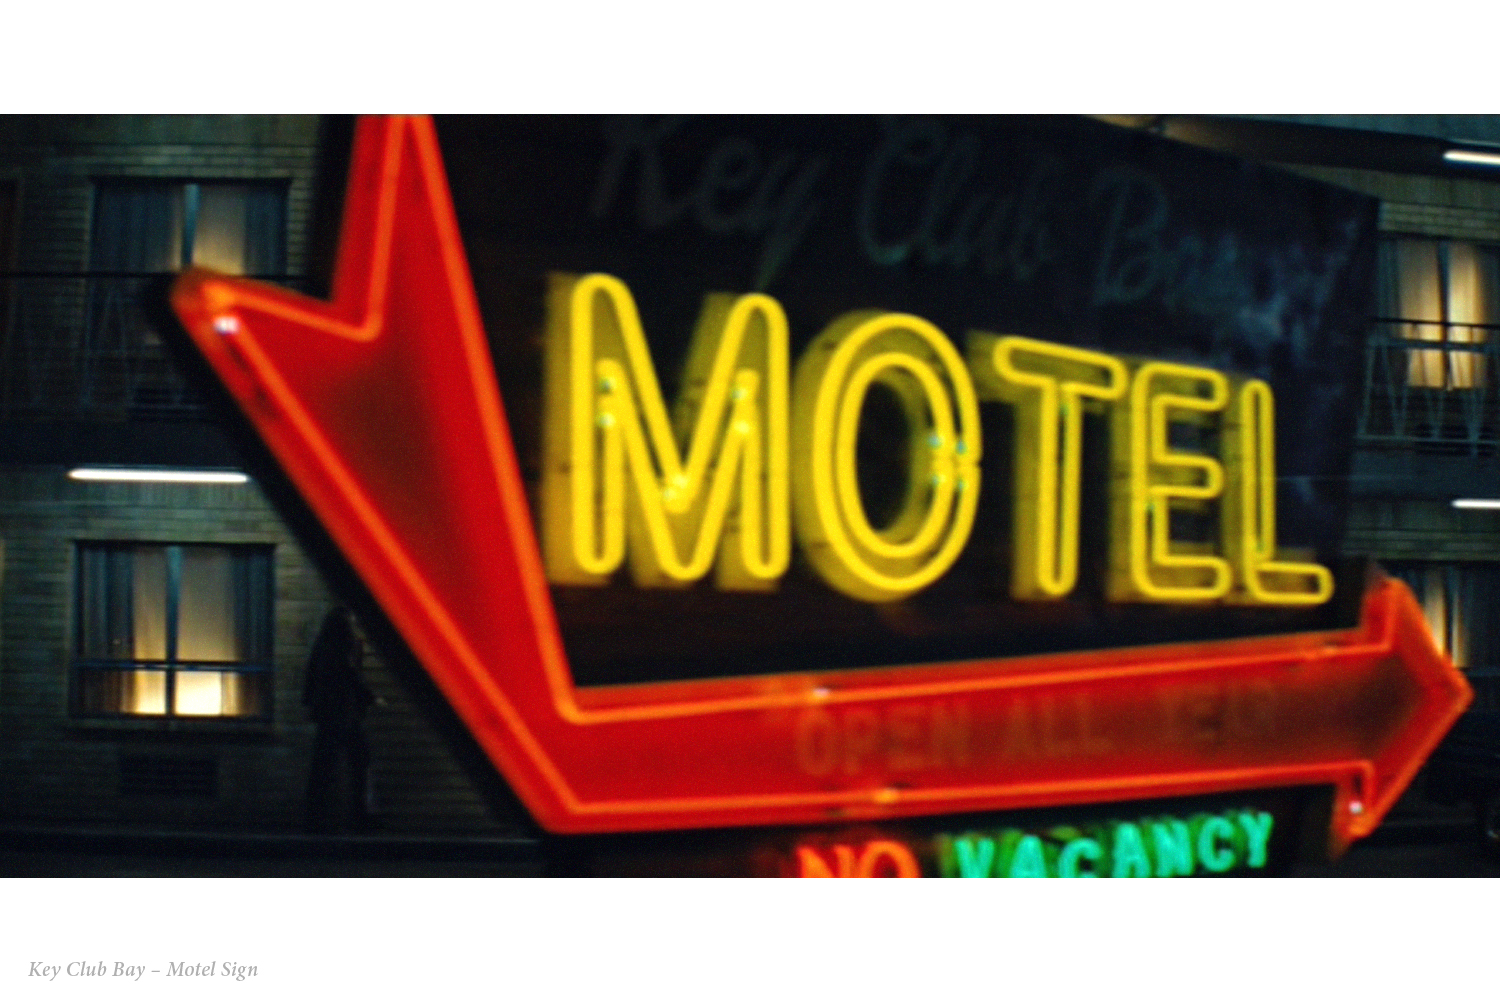 screenshot_motelsign_03.jpg